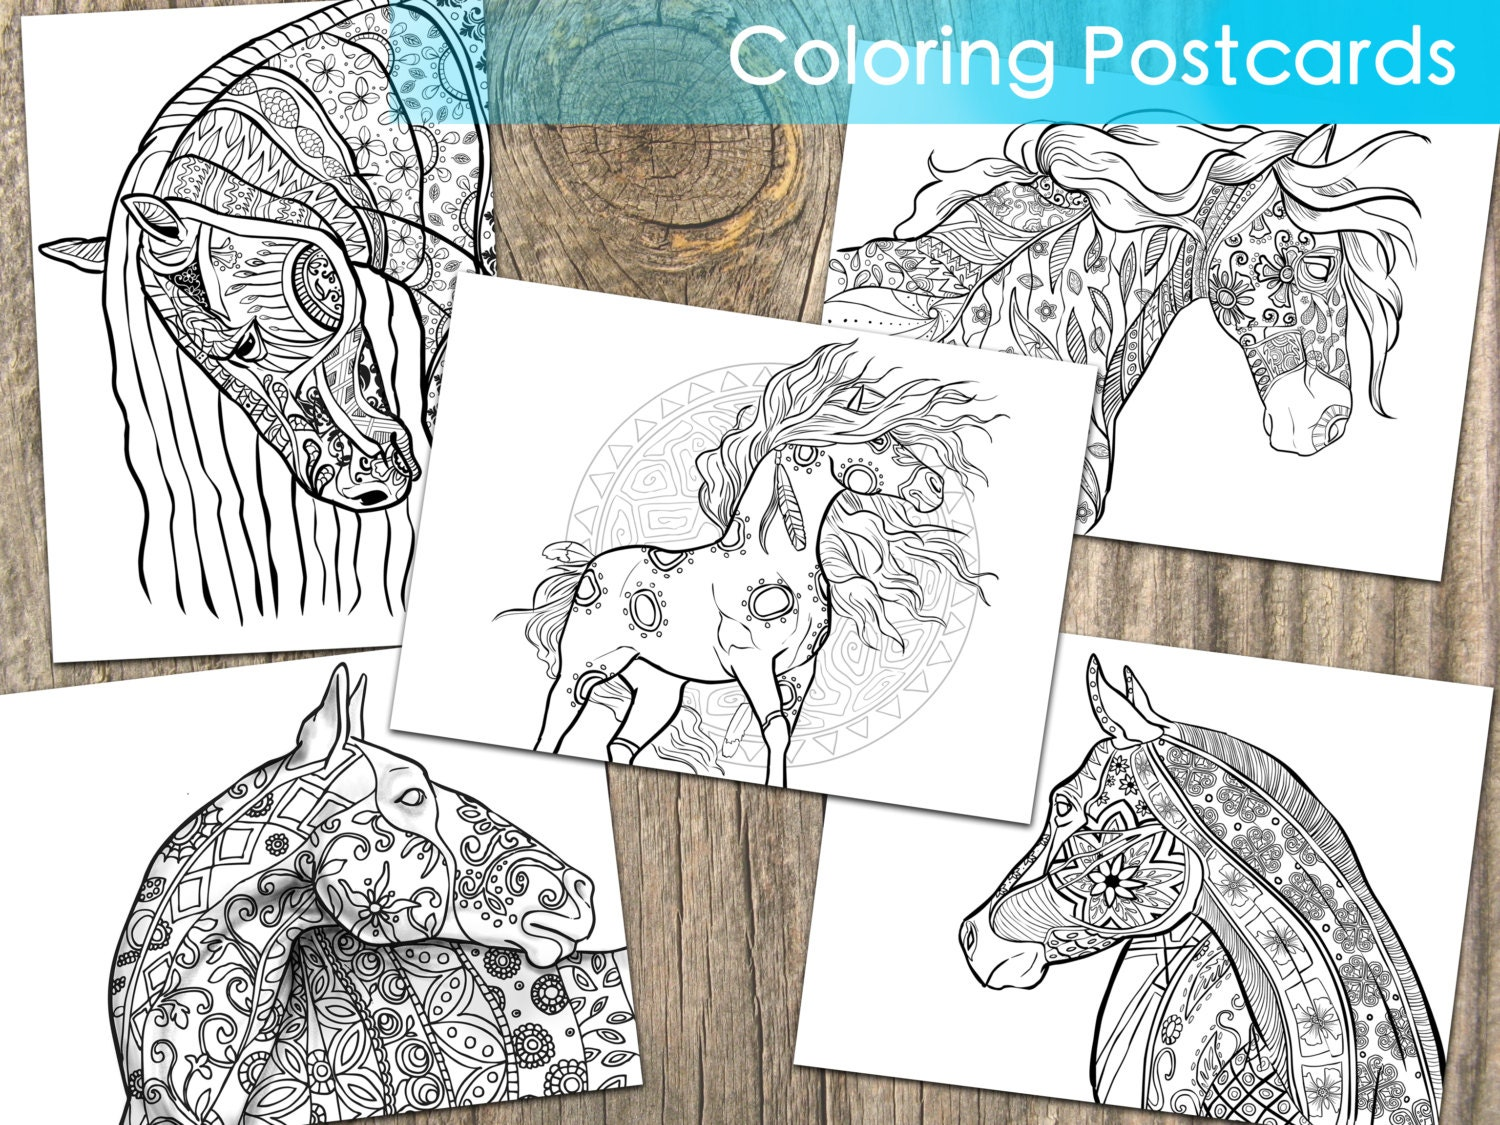 Coloring Postcards. Adult Coloring Postcards. Free Shipping